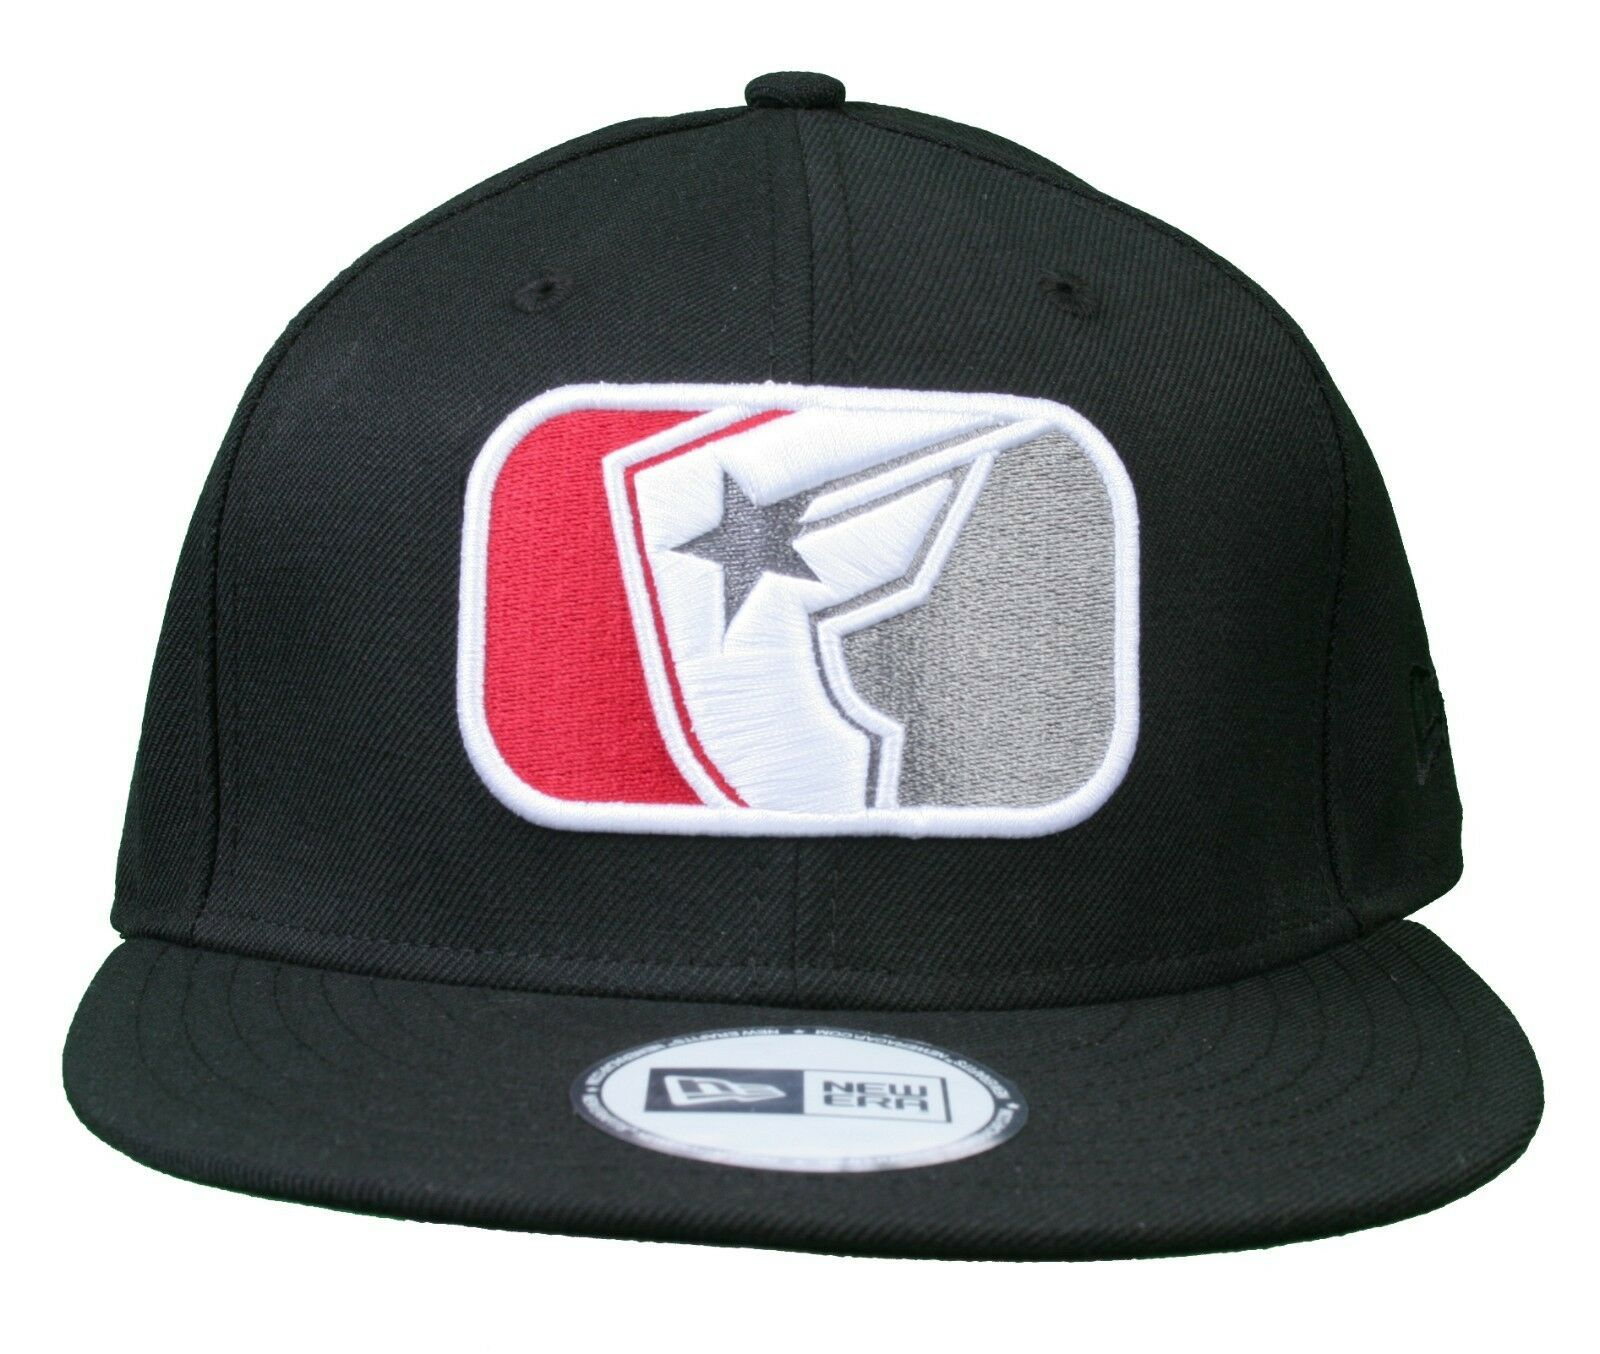 Famous Stars & Straps x Flymode Black Major League New Era Snapback Baseball Hat